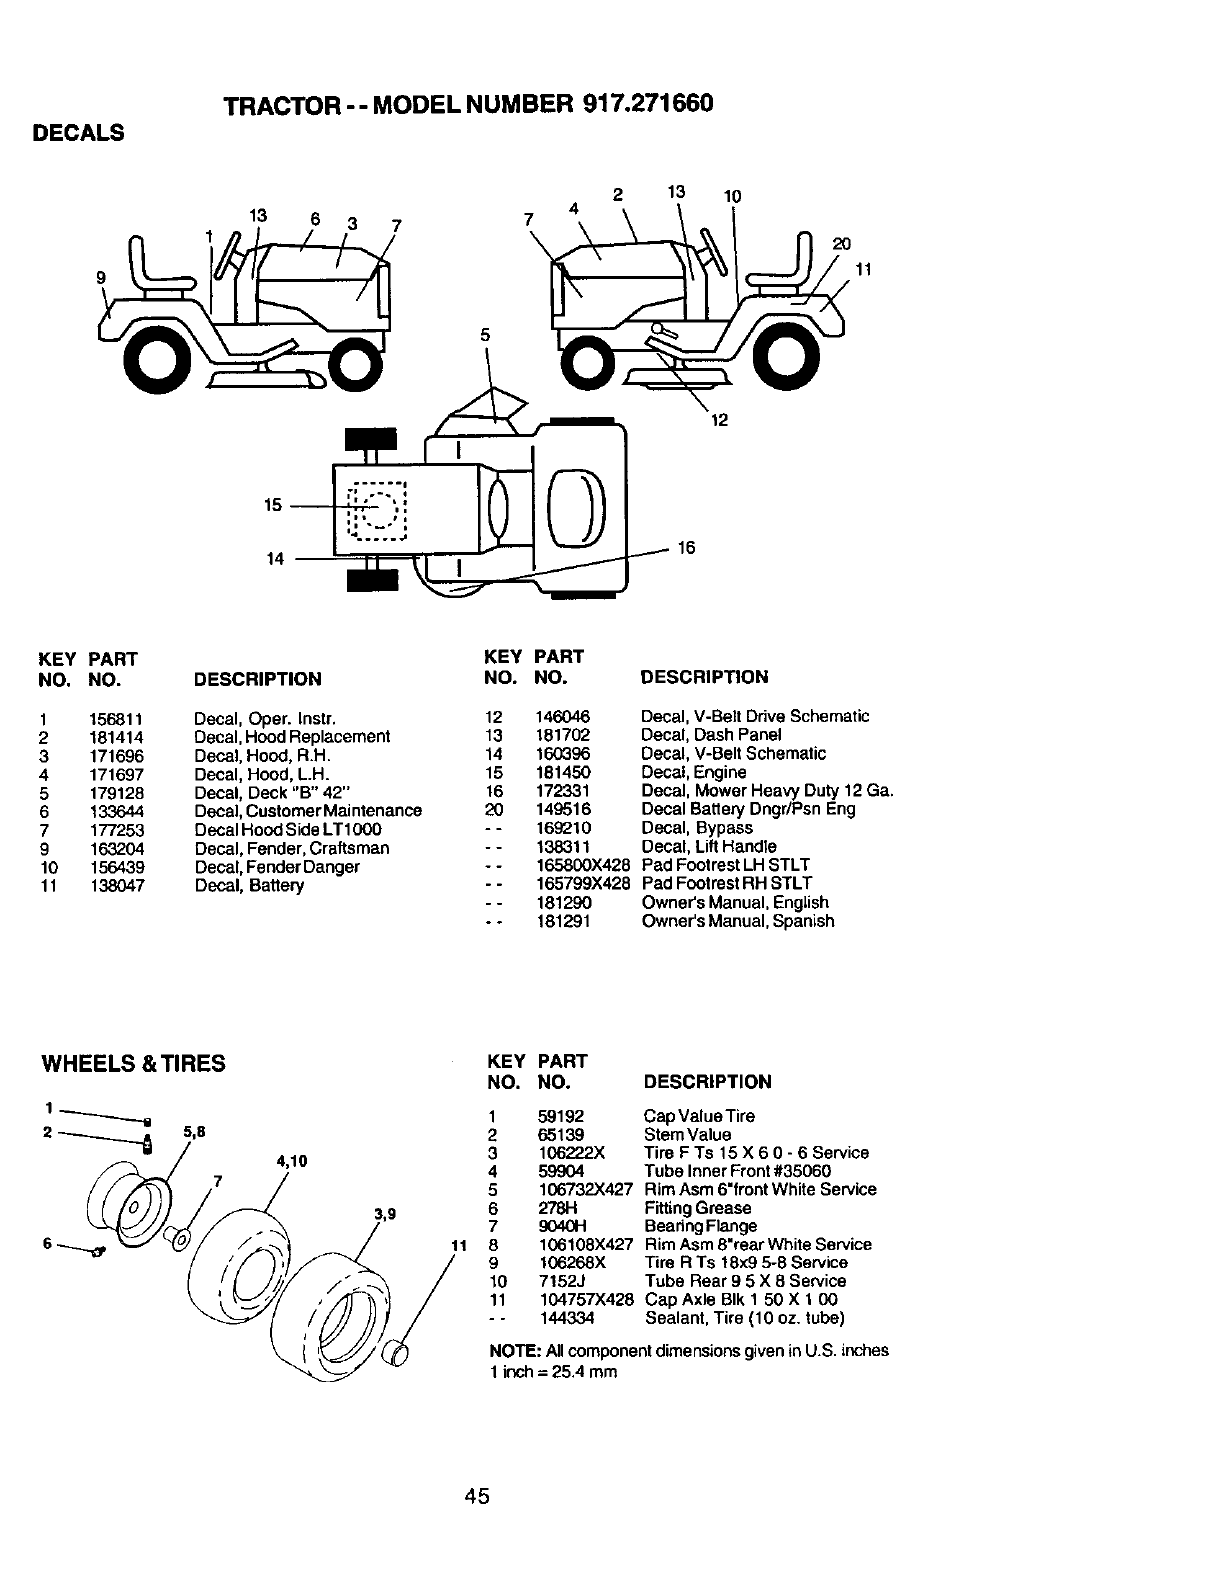 white tractor lt 13 wiring diagram craftsman 917271660 user manual lawn tractor manuals and guides  917271660 user manual lawn tractor